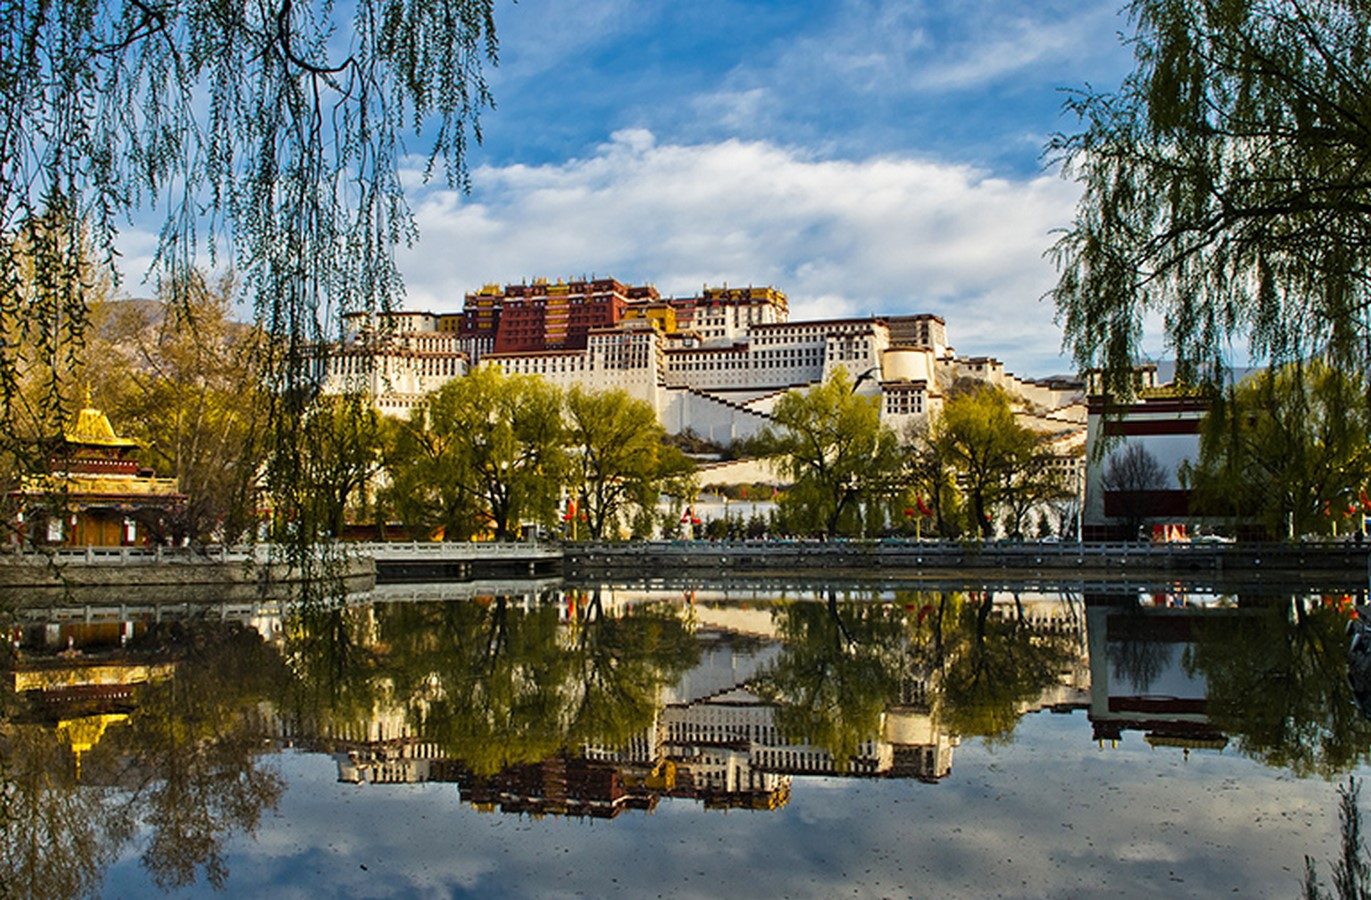 10 Things you did not know about Potala Palace,Tibet - Sheet2